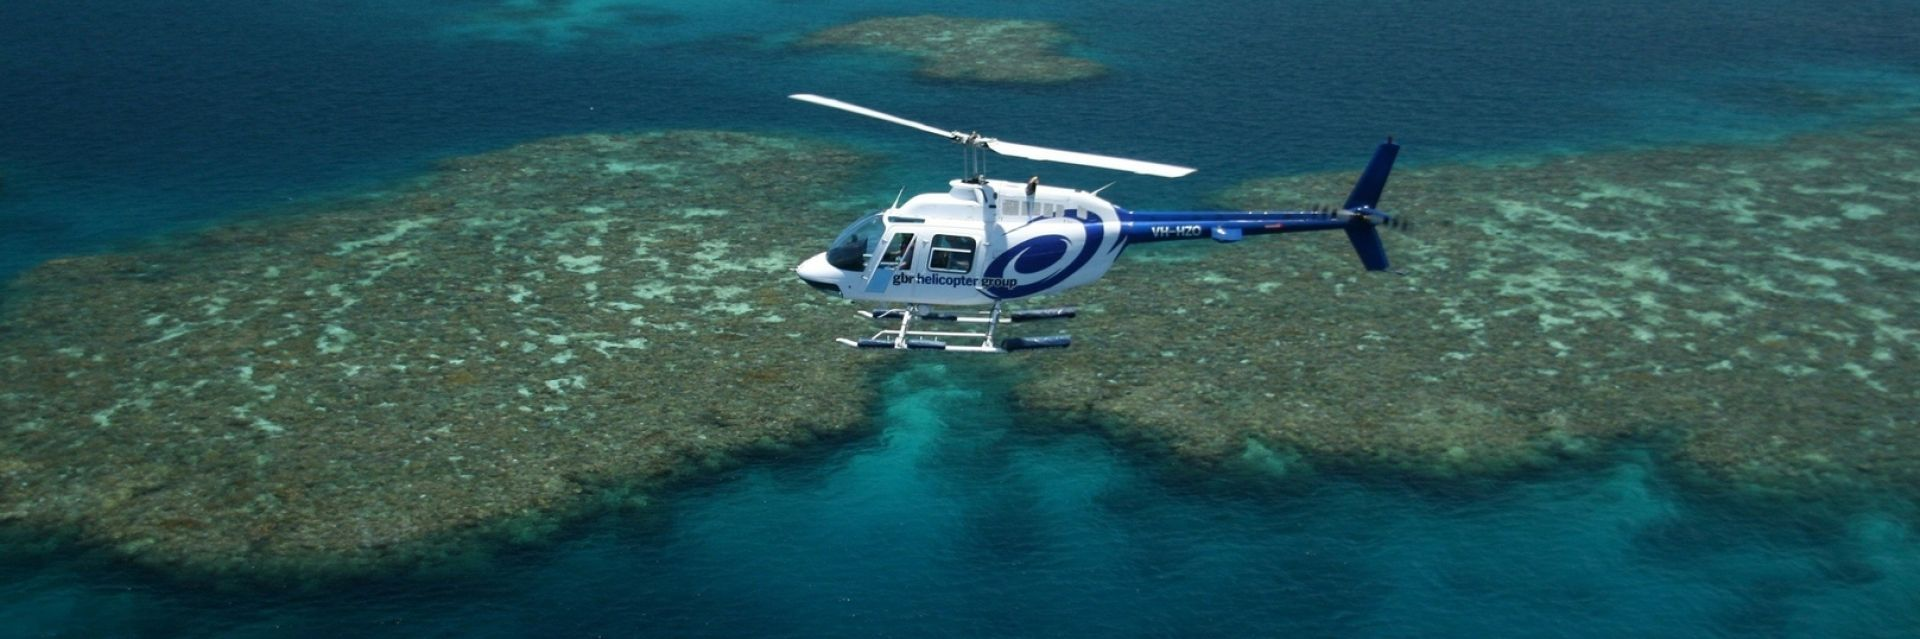 Helicopter hovering over the iconic aqua blue and green scene of the Great Barrier Reef